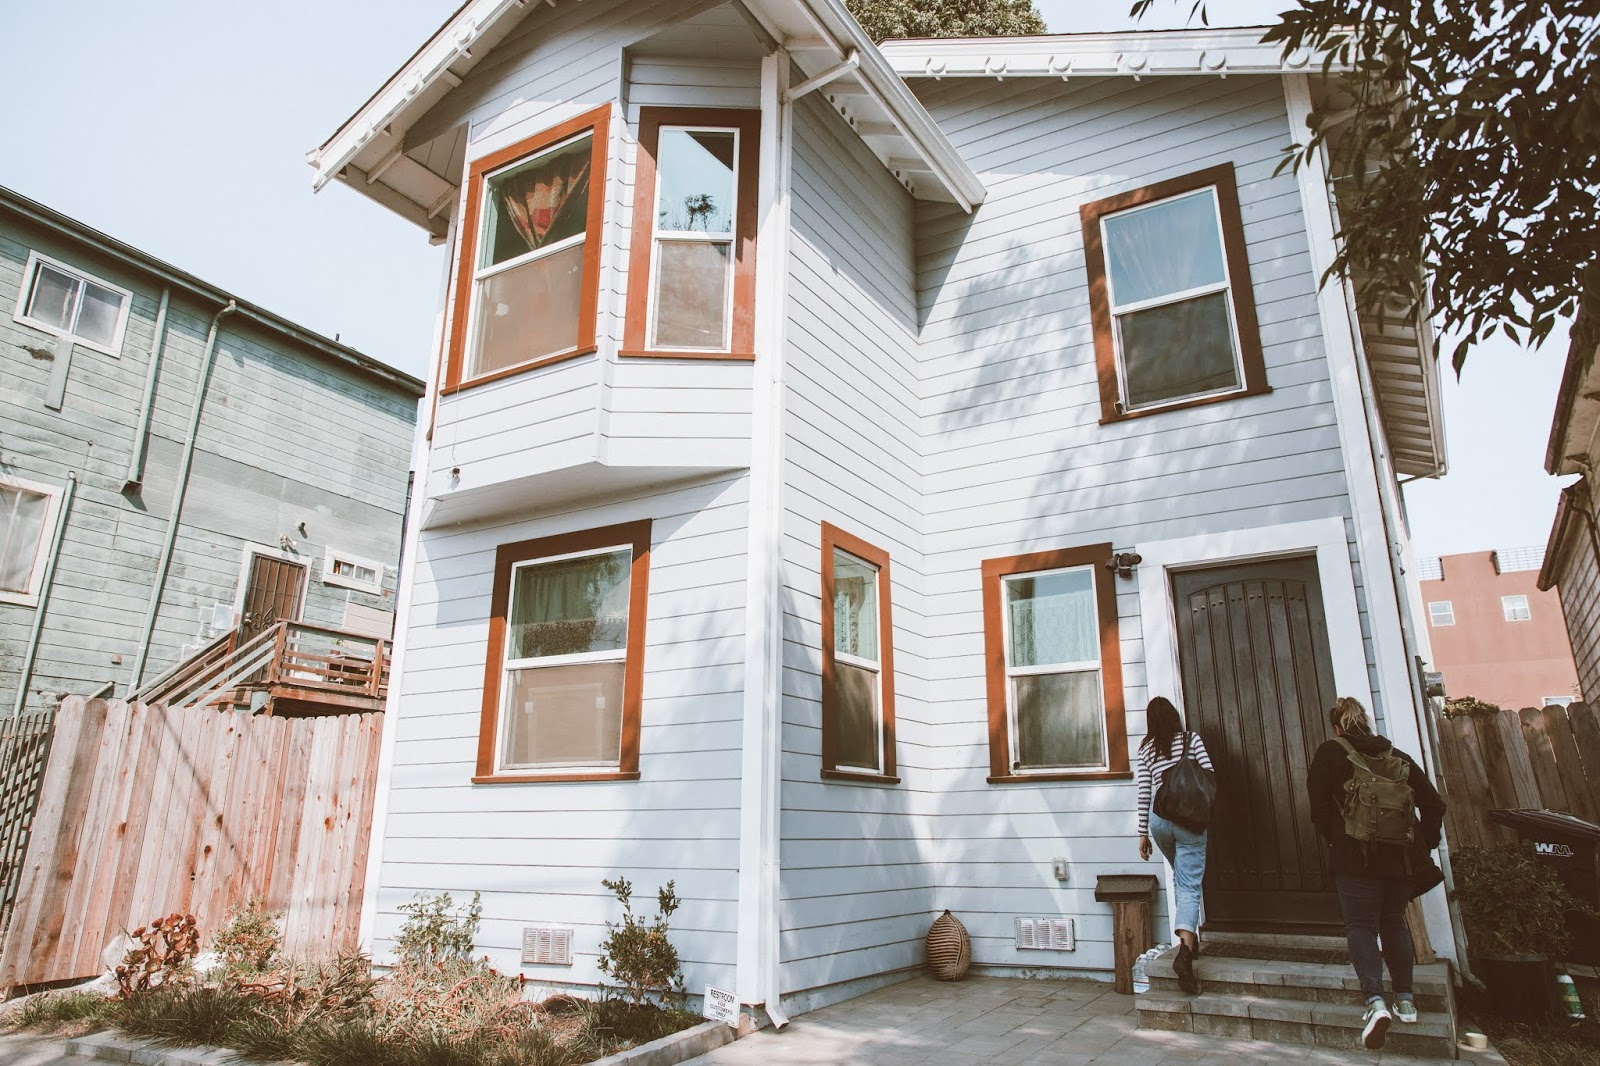 AirBnb Oakland, CA, Mcclymonds neighborhood, where to stay in San Francisco - ArizonaGirl.com